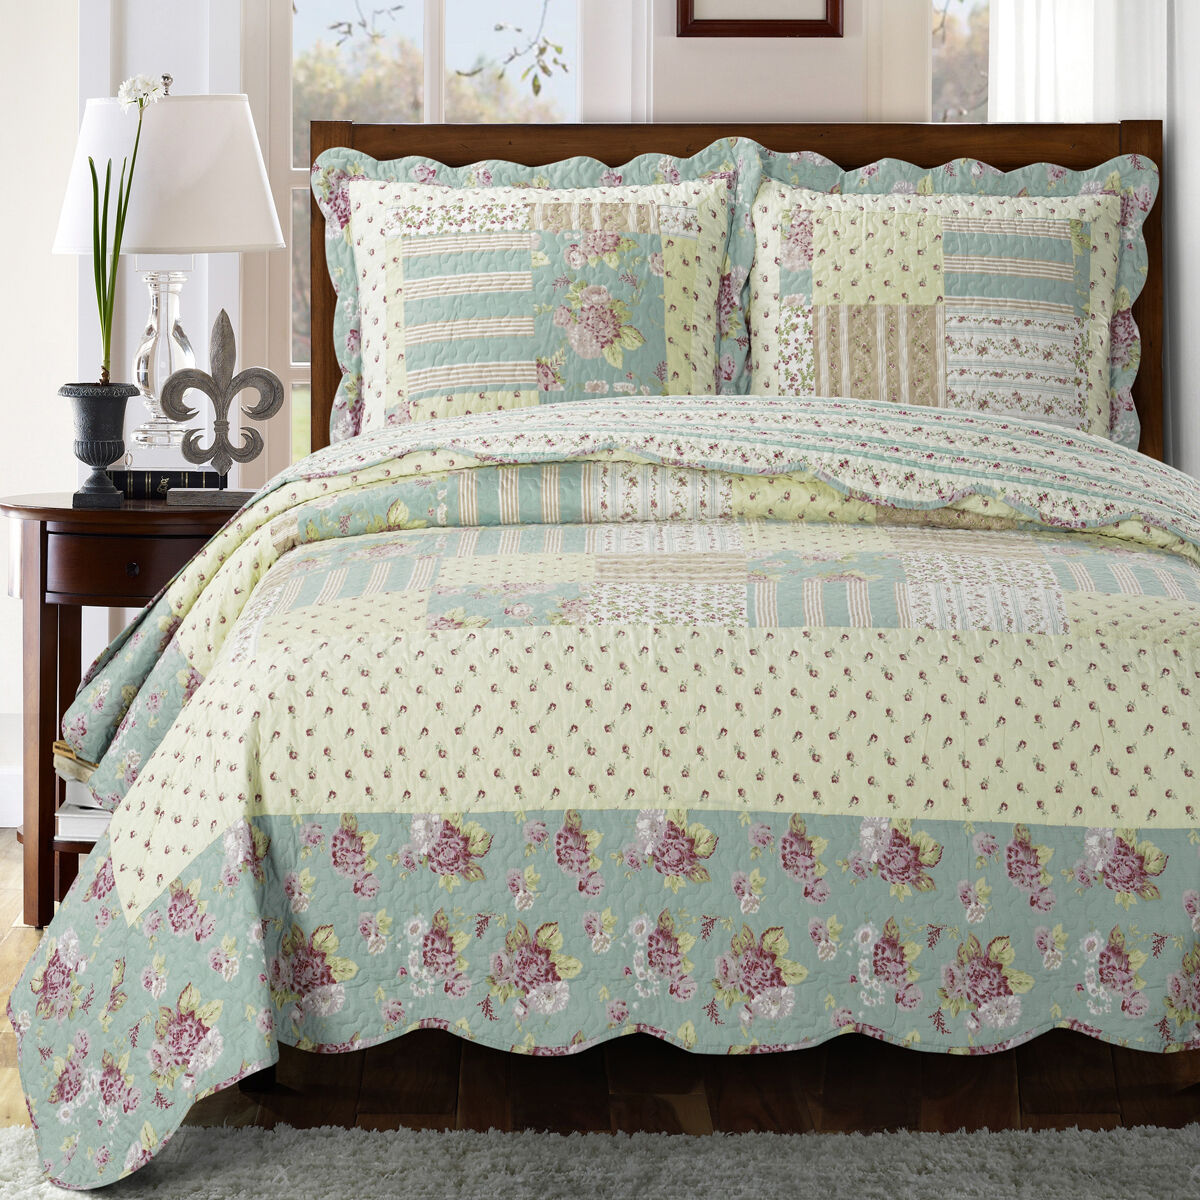 Annabel Luxury Microfiber Printed Coverlet Over-Sized Bedspr